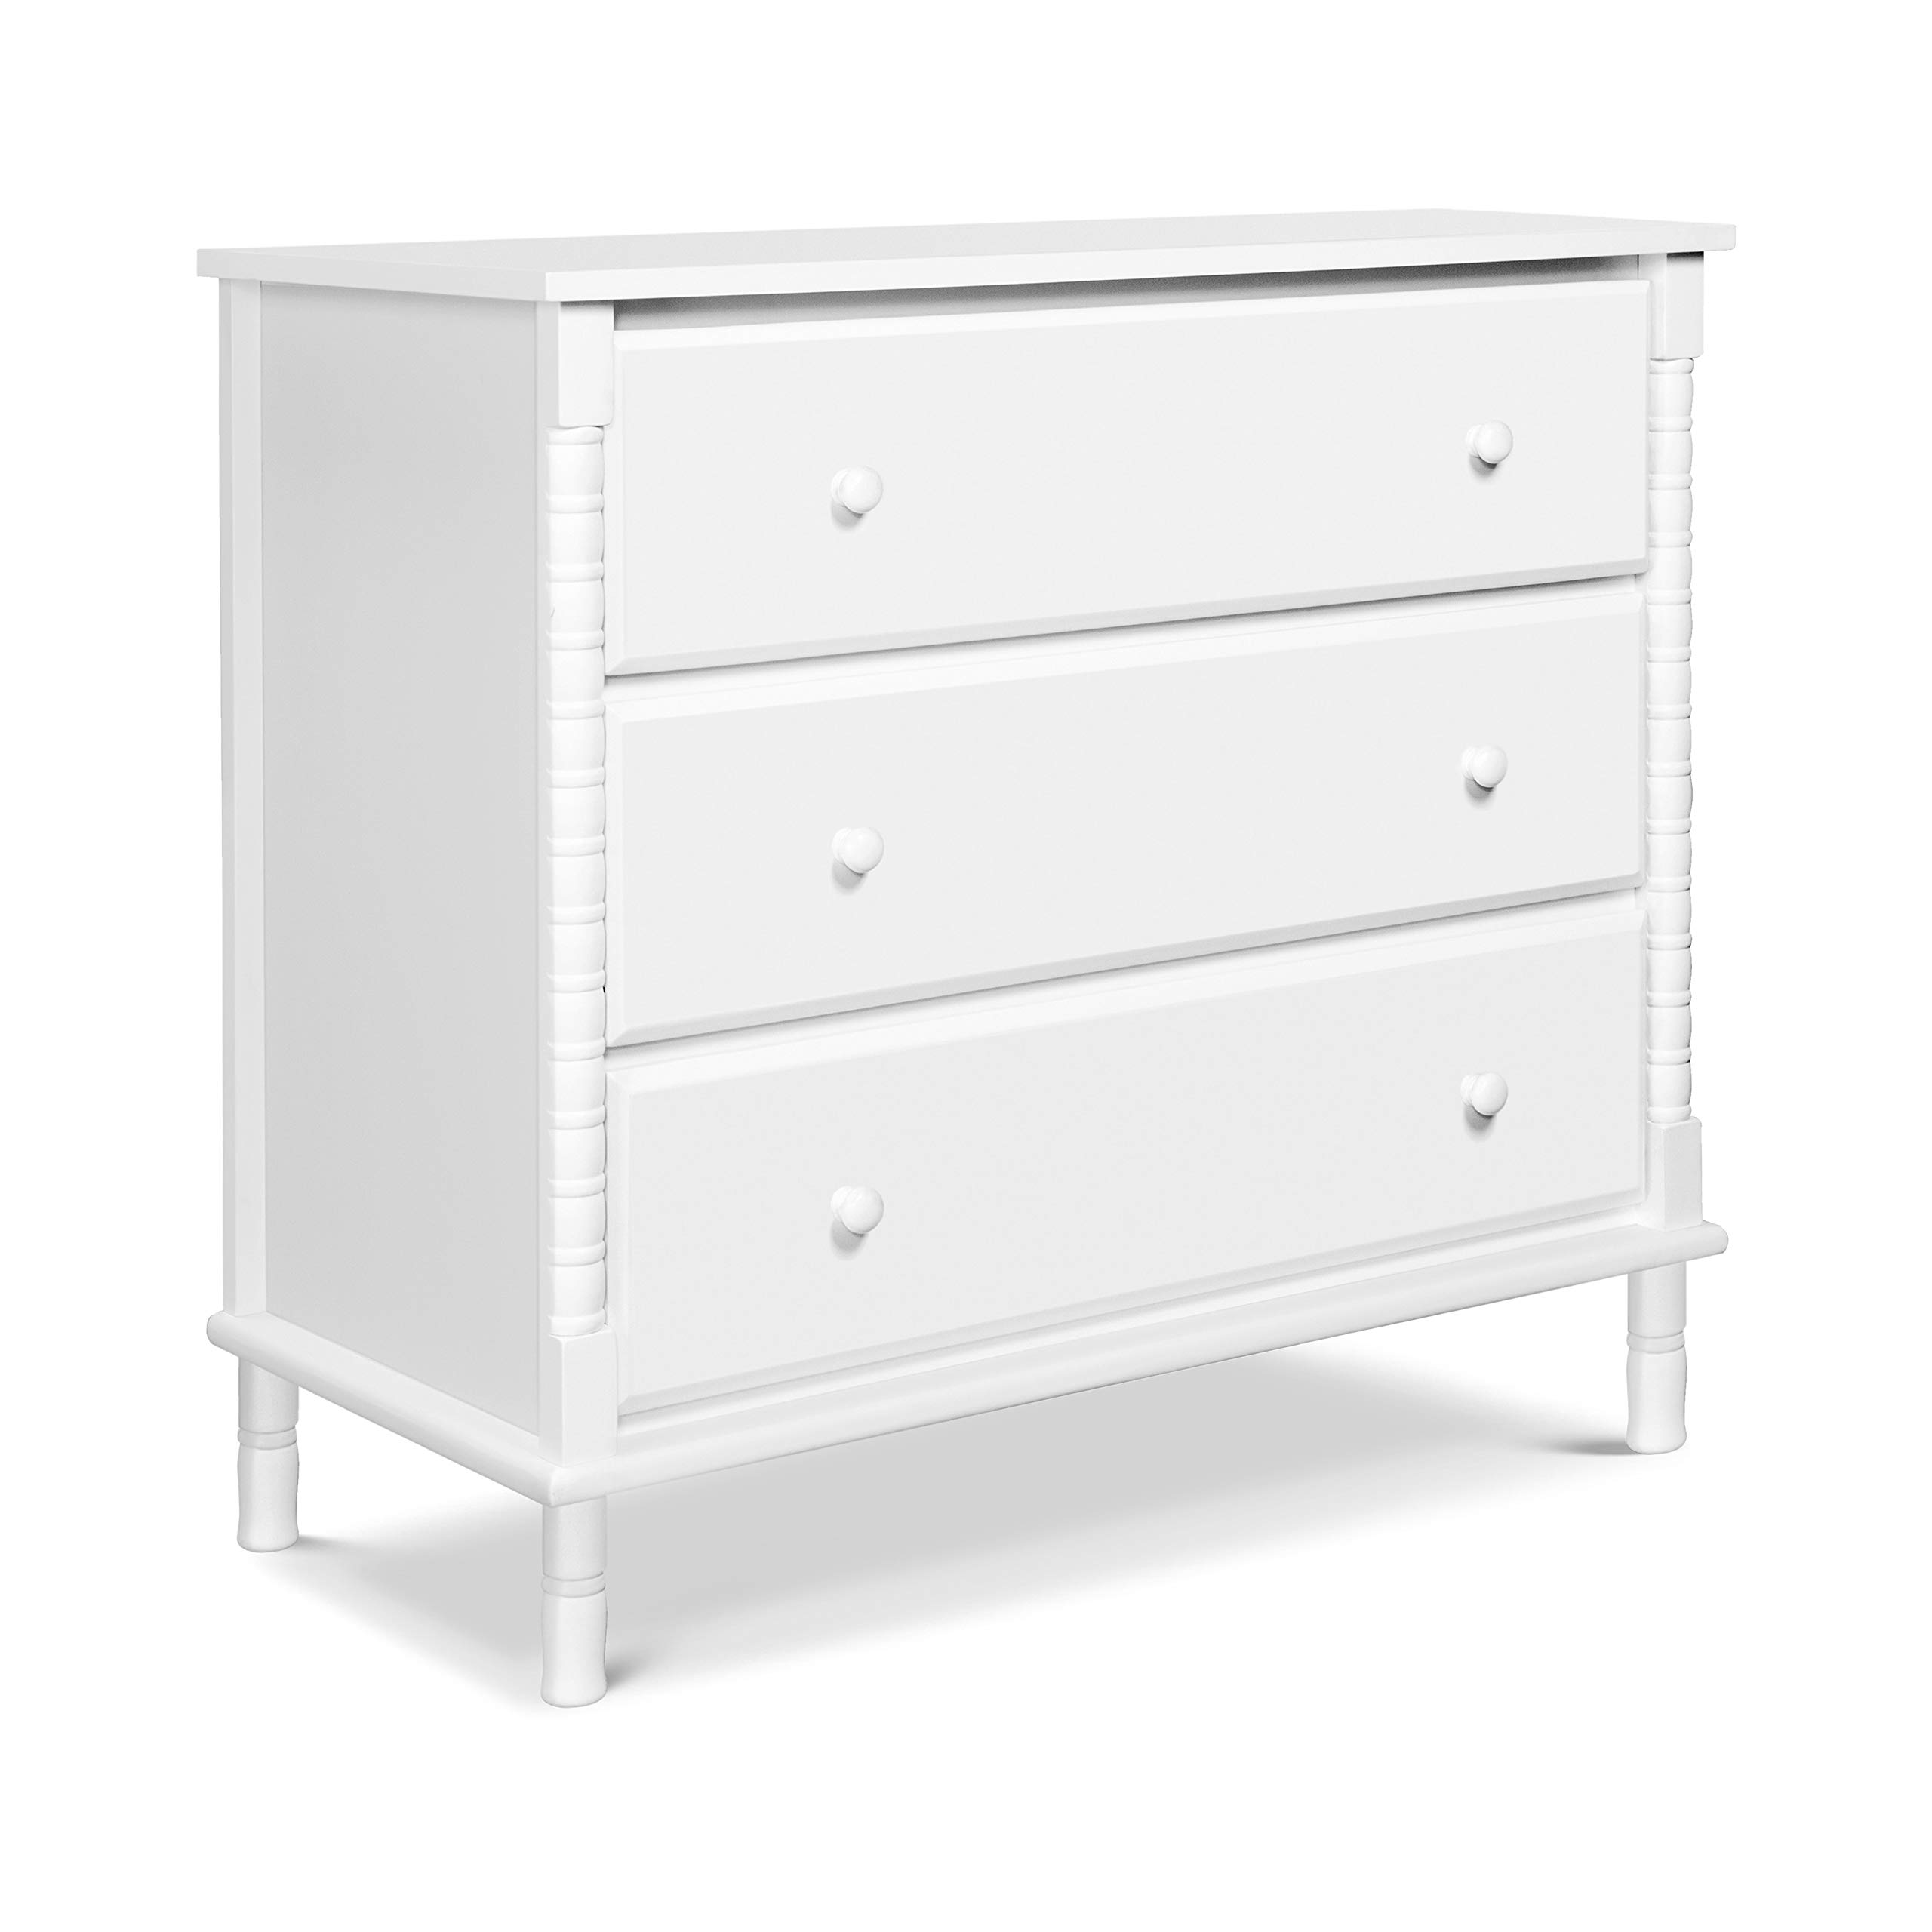 Davinci Jenny Lind Spindle 3 Drawer Dresser, White by DaVinci